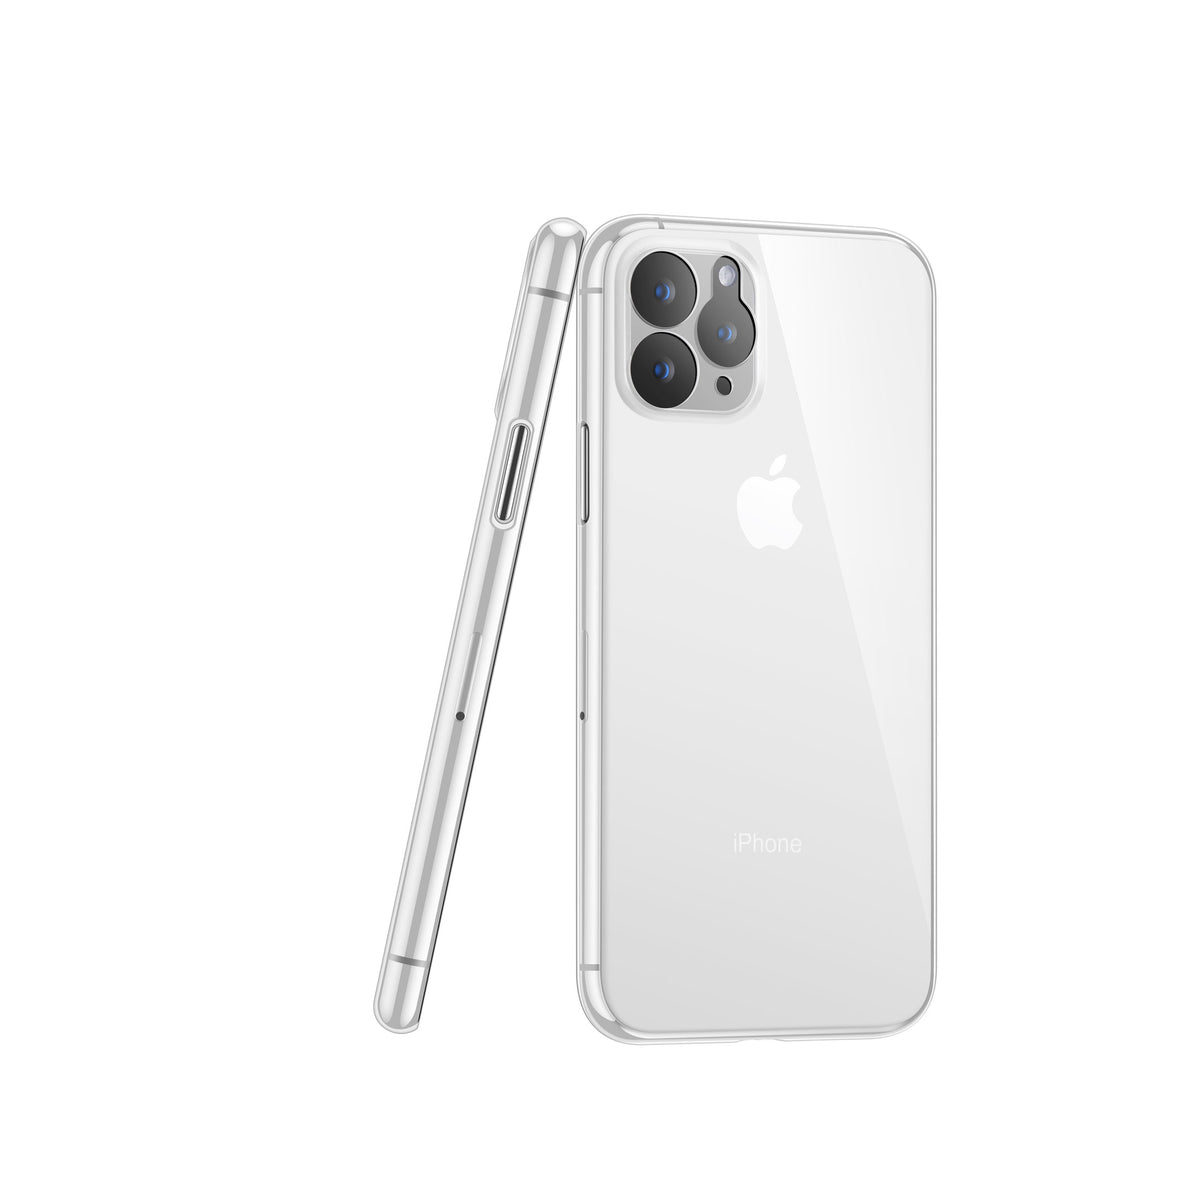 Go Original iPhone 11 Pro Slim Case